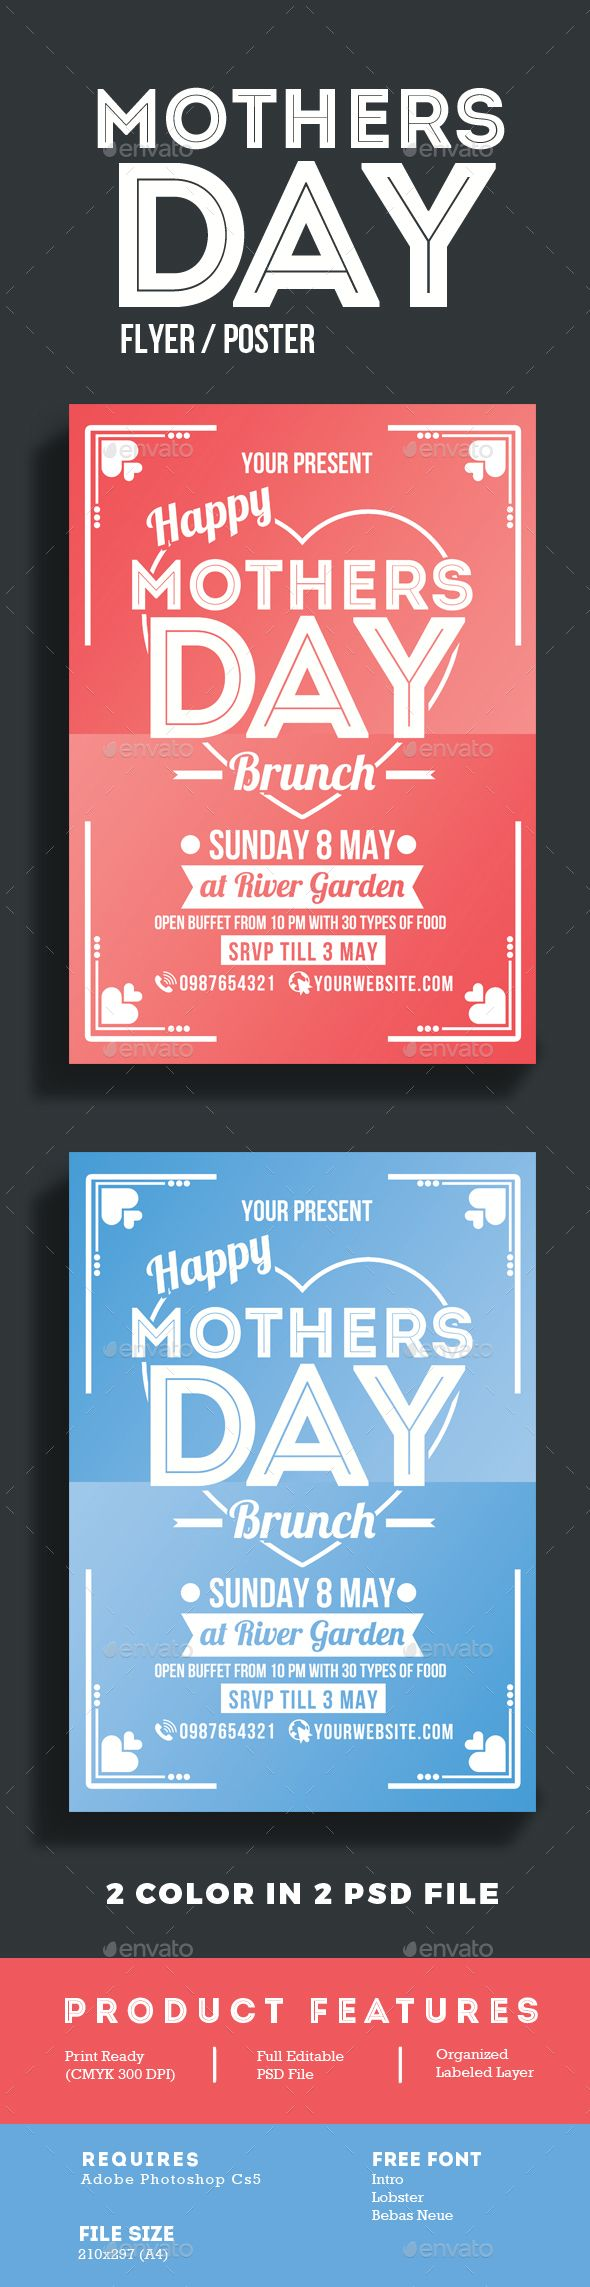 2 color poster design - Mothers Day Brunch Flyer Poster